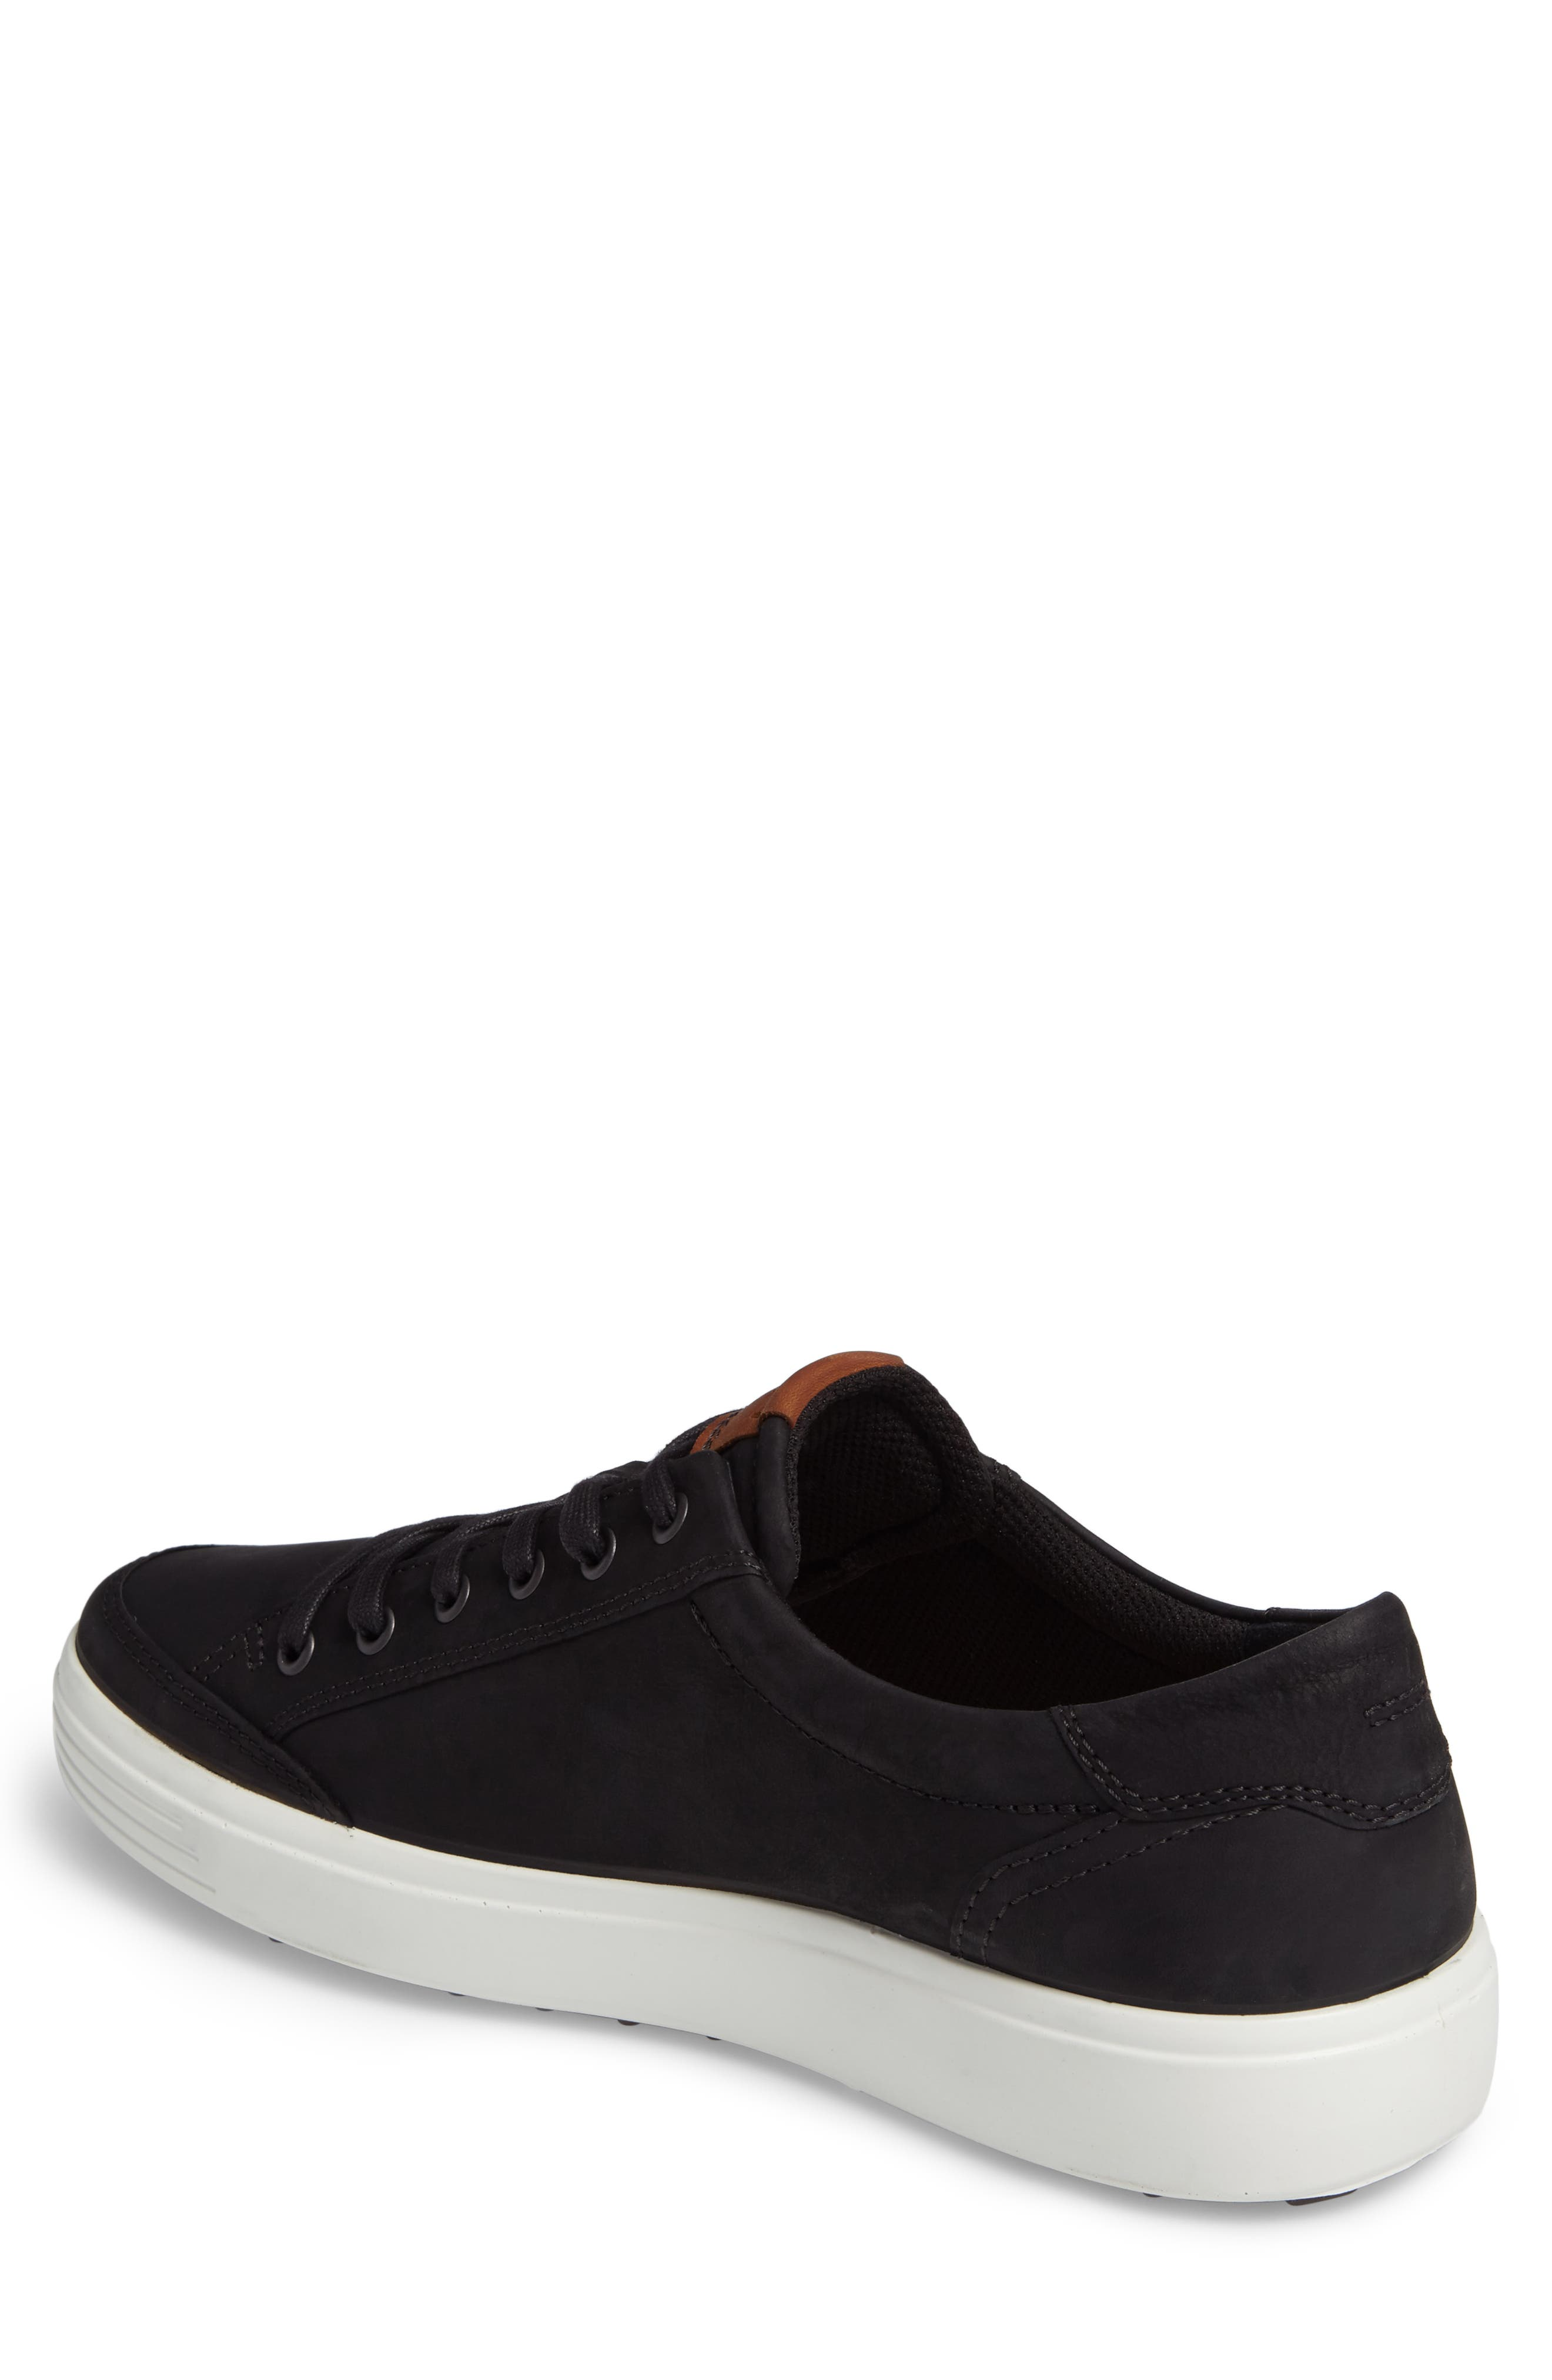 ECCO, Soft 7 Long Lace Sneaker, Alternate thumbnail 2, color, BLACK LEATHER